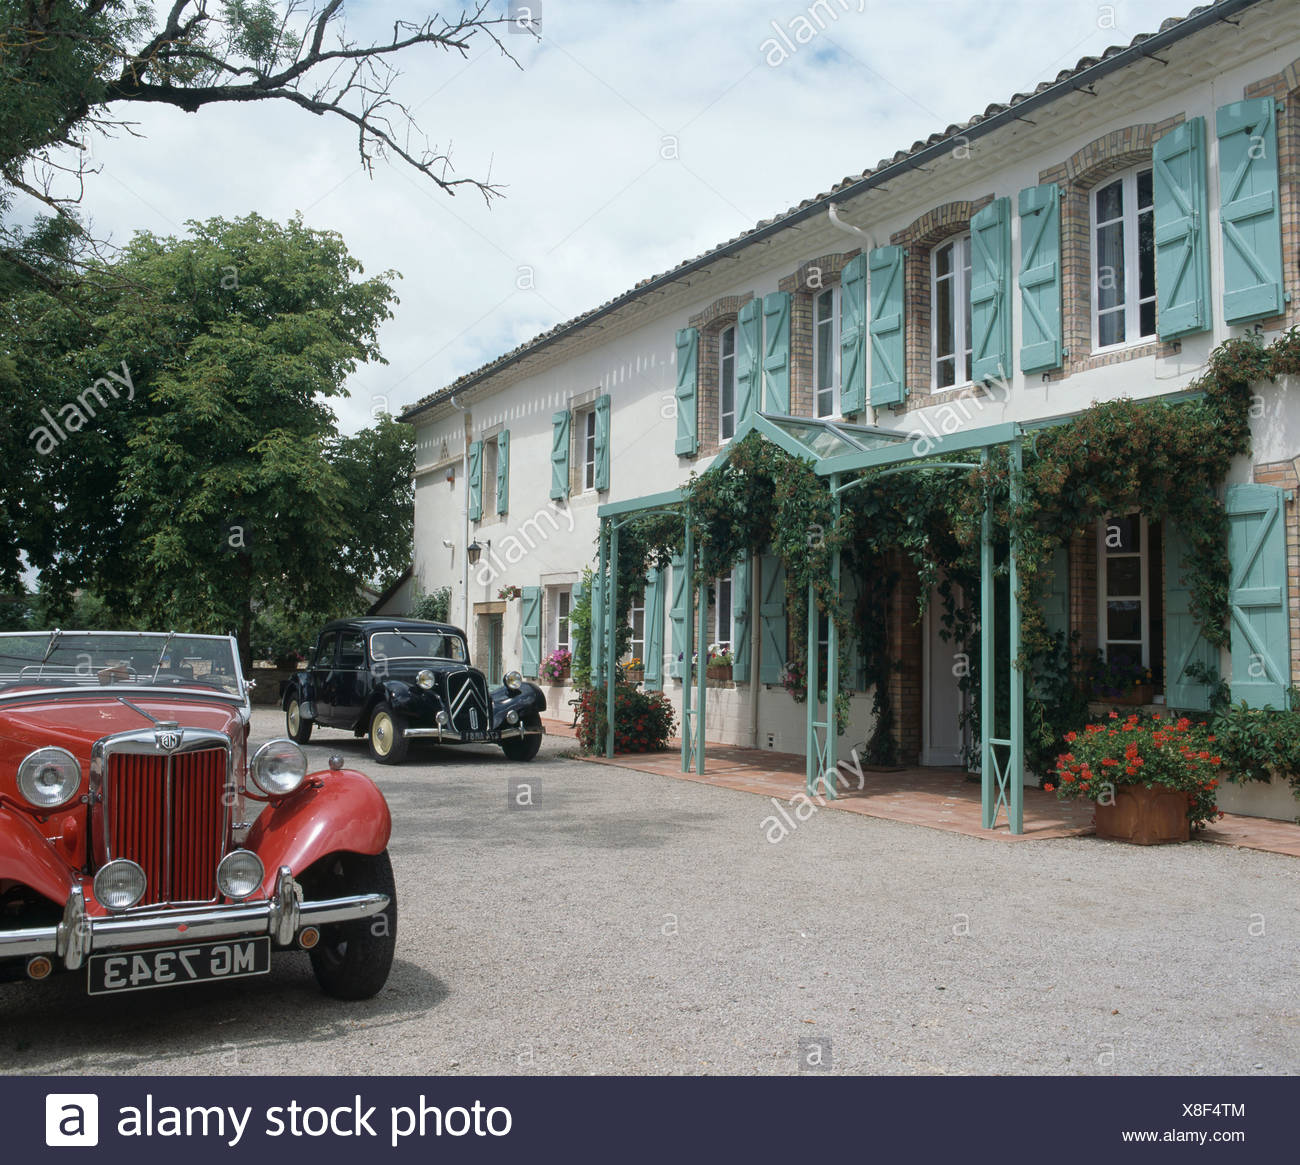 Red Mg And Black Citroen Cars Outside French Country House With